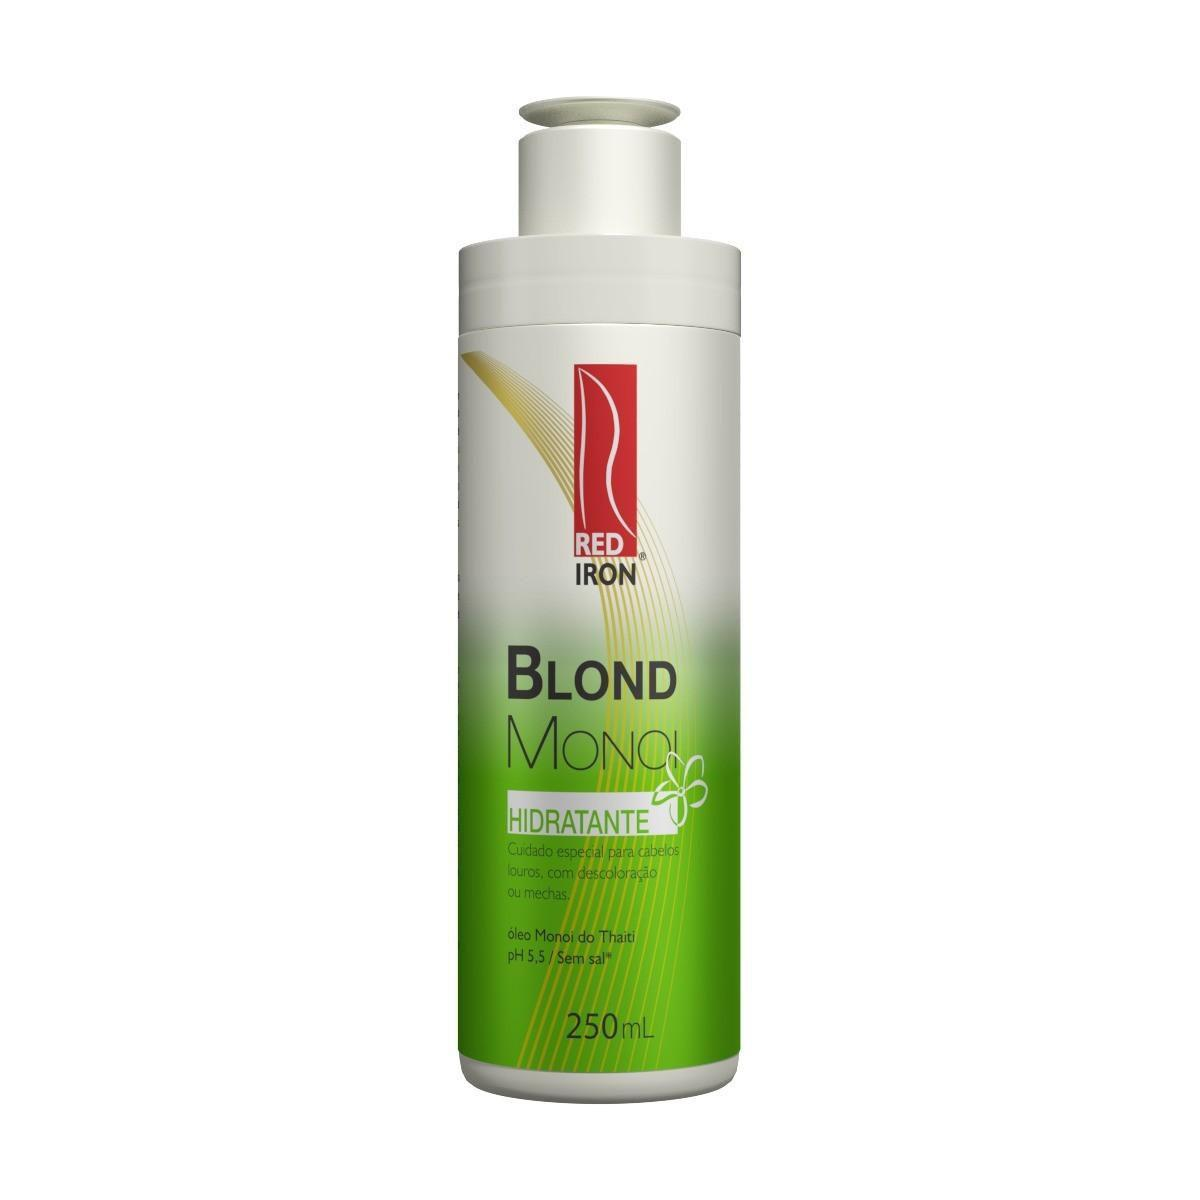 Red Iron Hidratante Blond Monoi 250ml